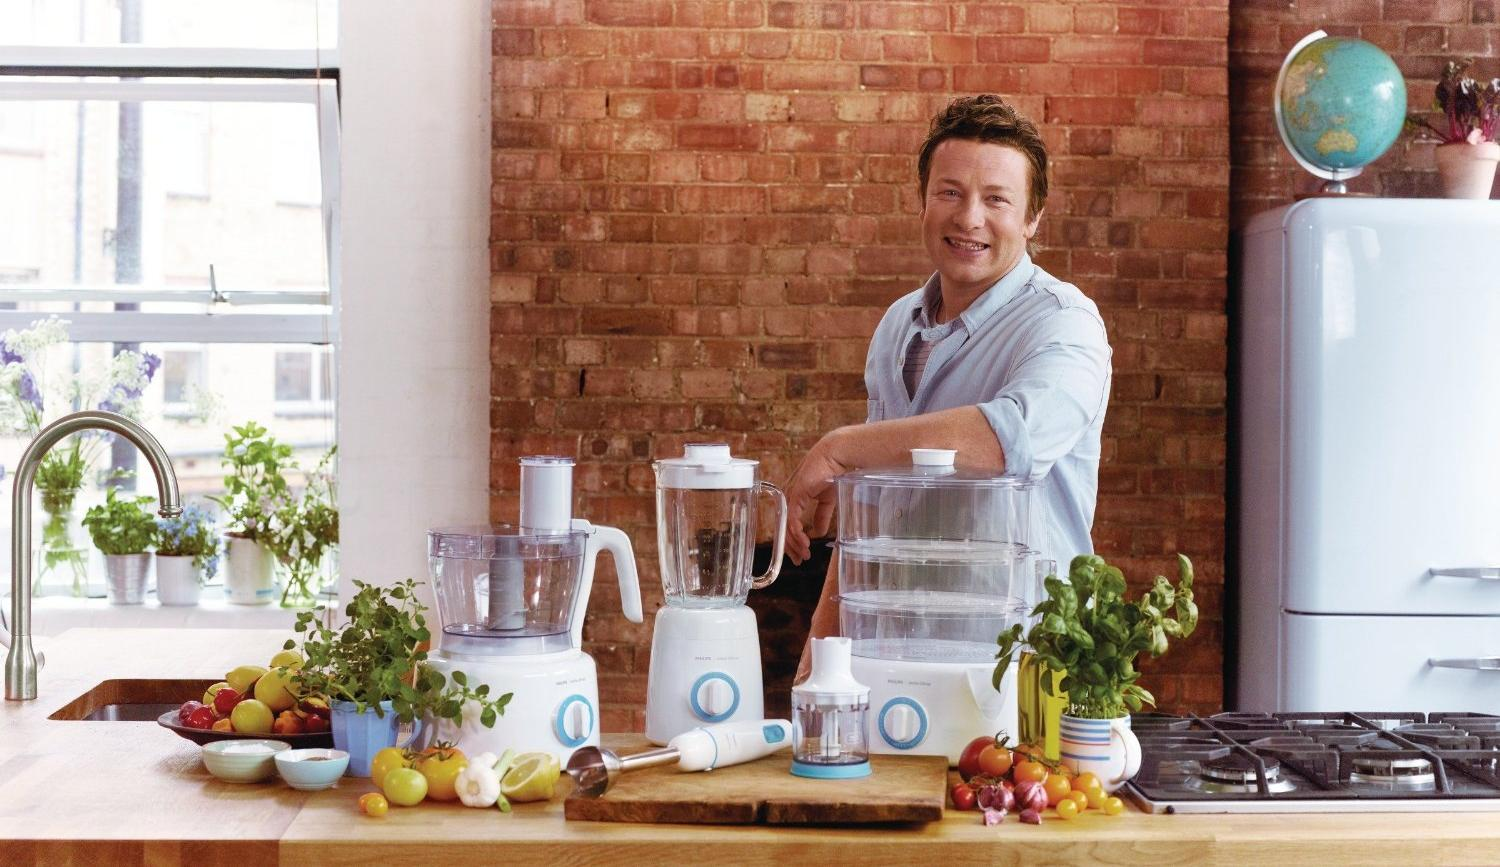 Jamie oliver at center of australian farmer controversy for Cocina 5 ingredientes jamie oliver